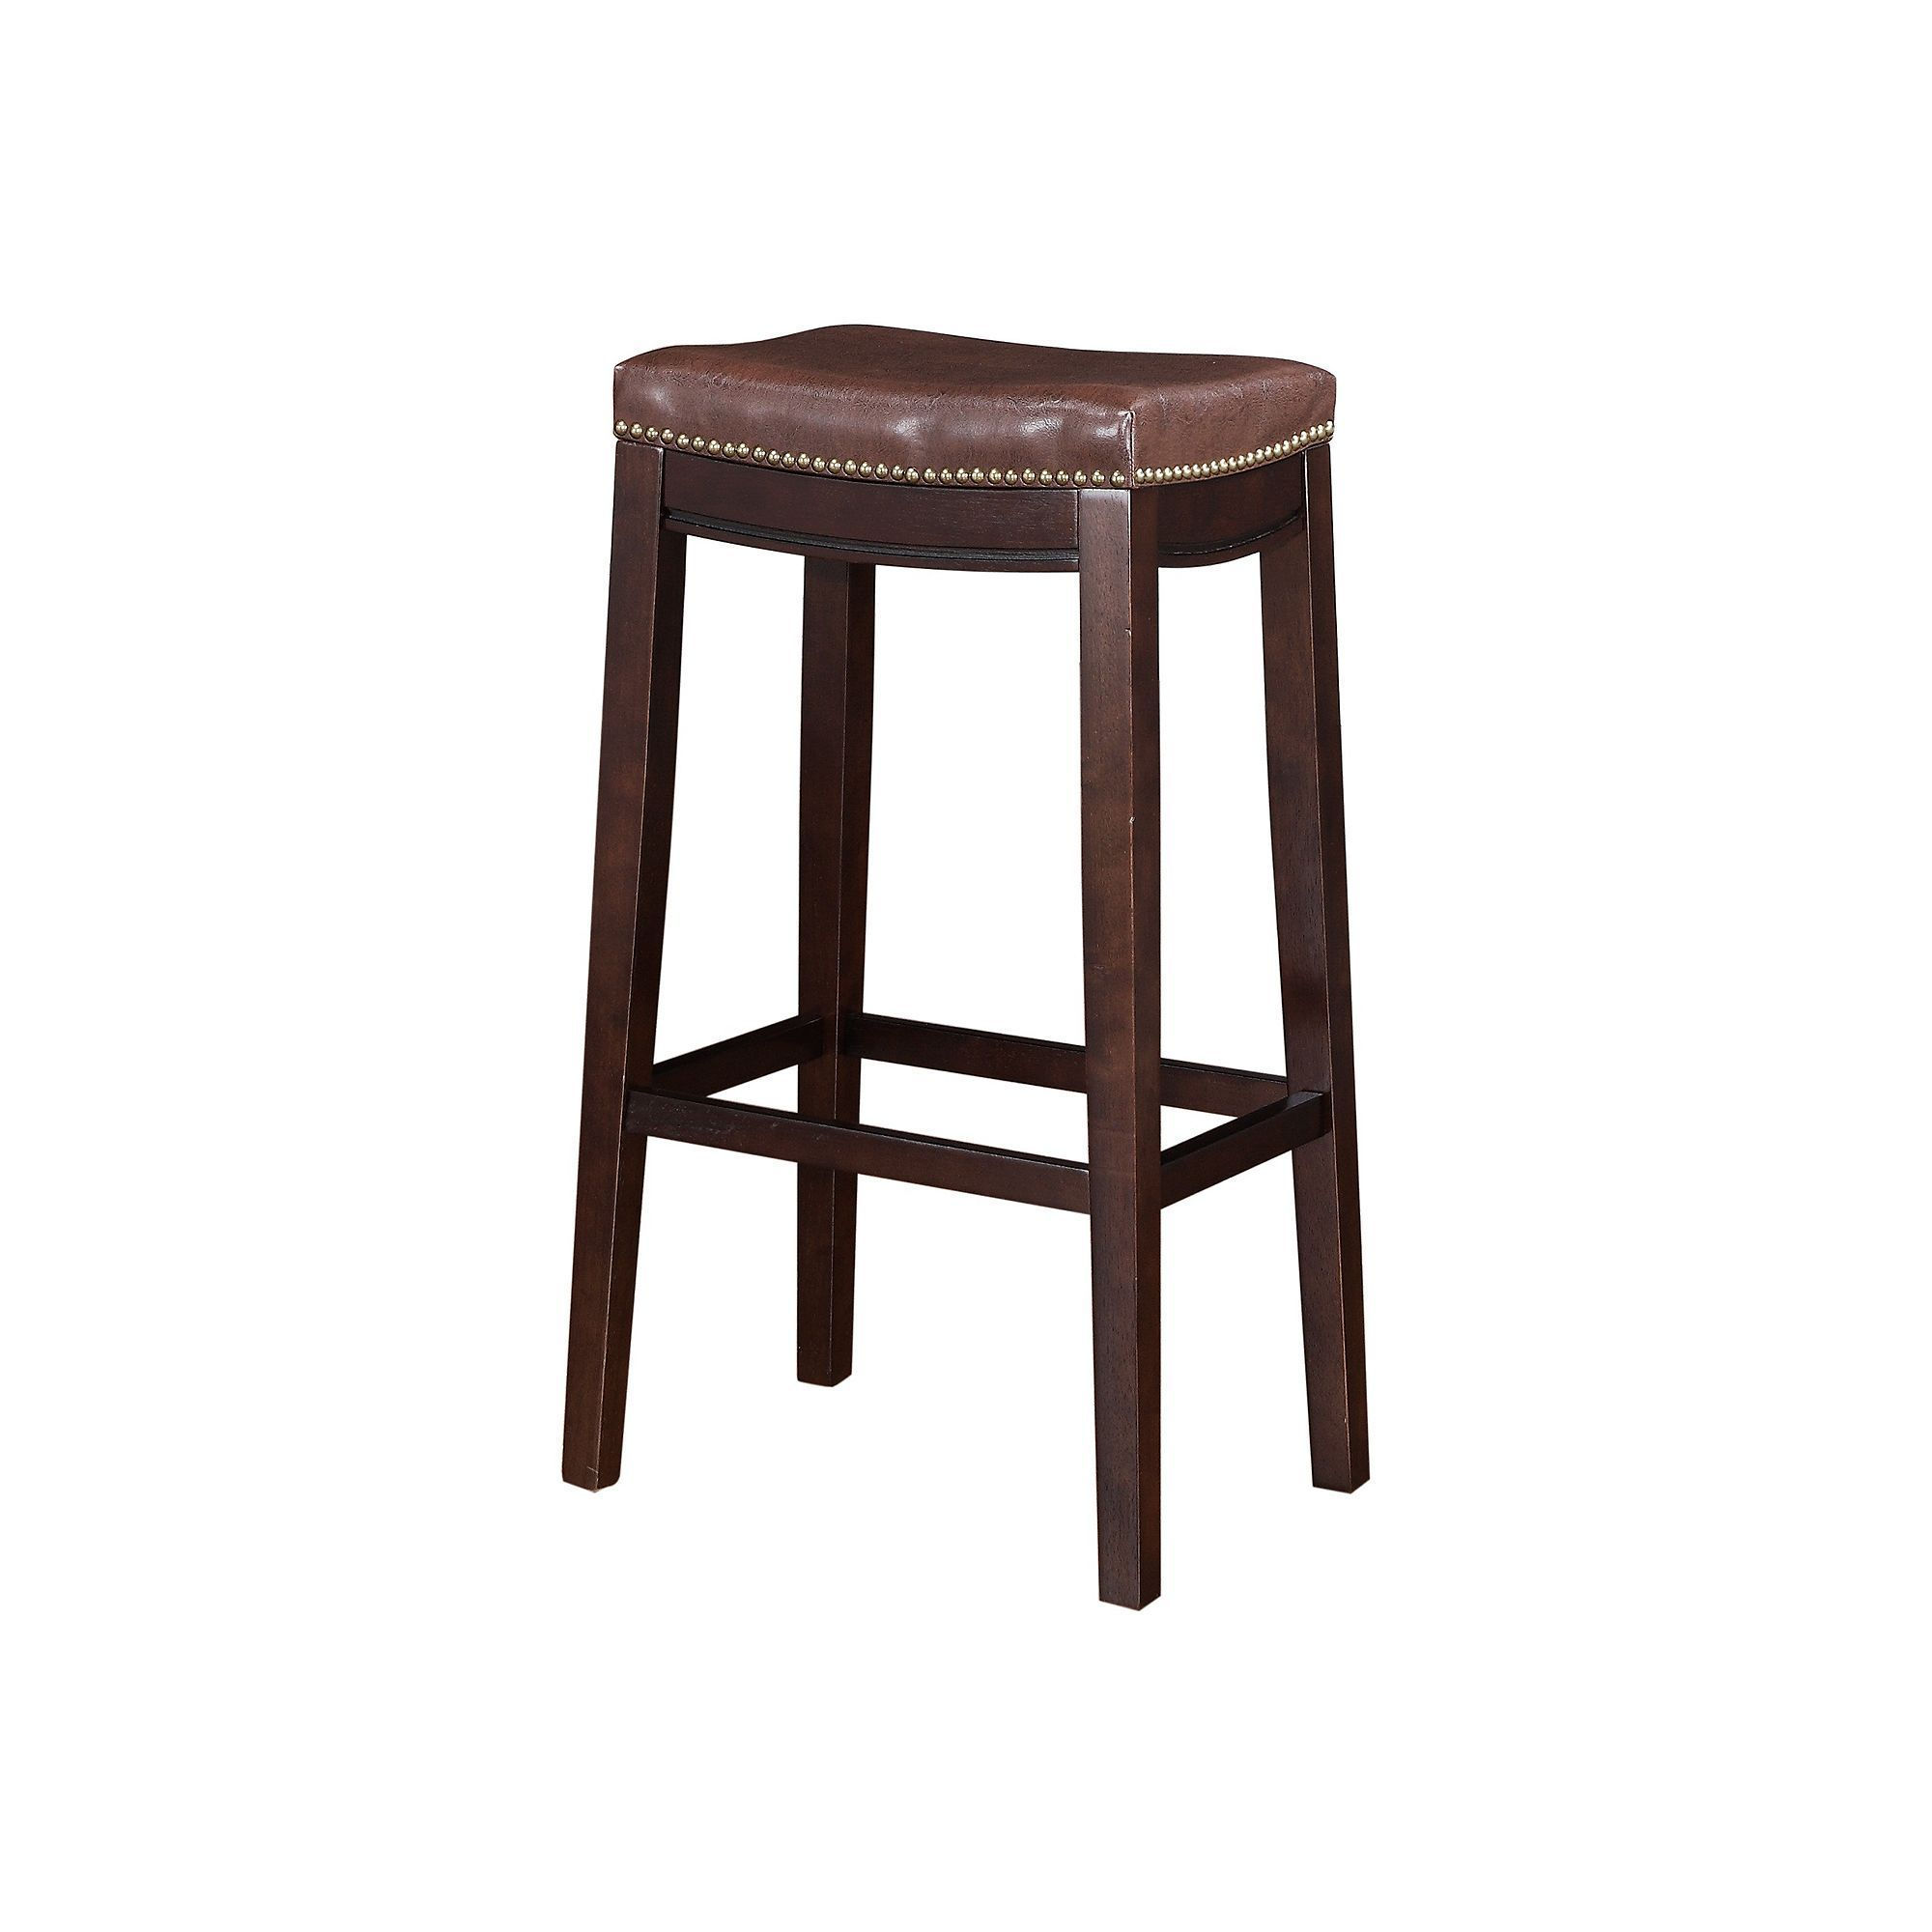 Stupendous Linon Allure Bar Stool Products Black Bar Stools Andrewgaddart Wooden Chair Designs For Living Room Andrewgaddartcom